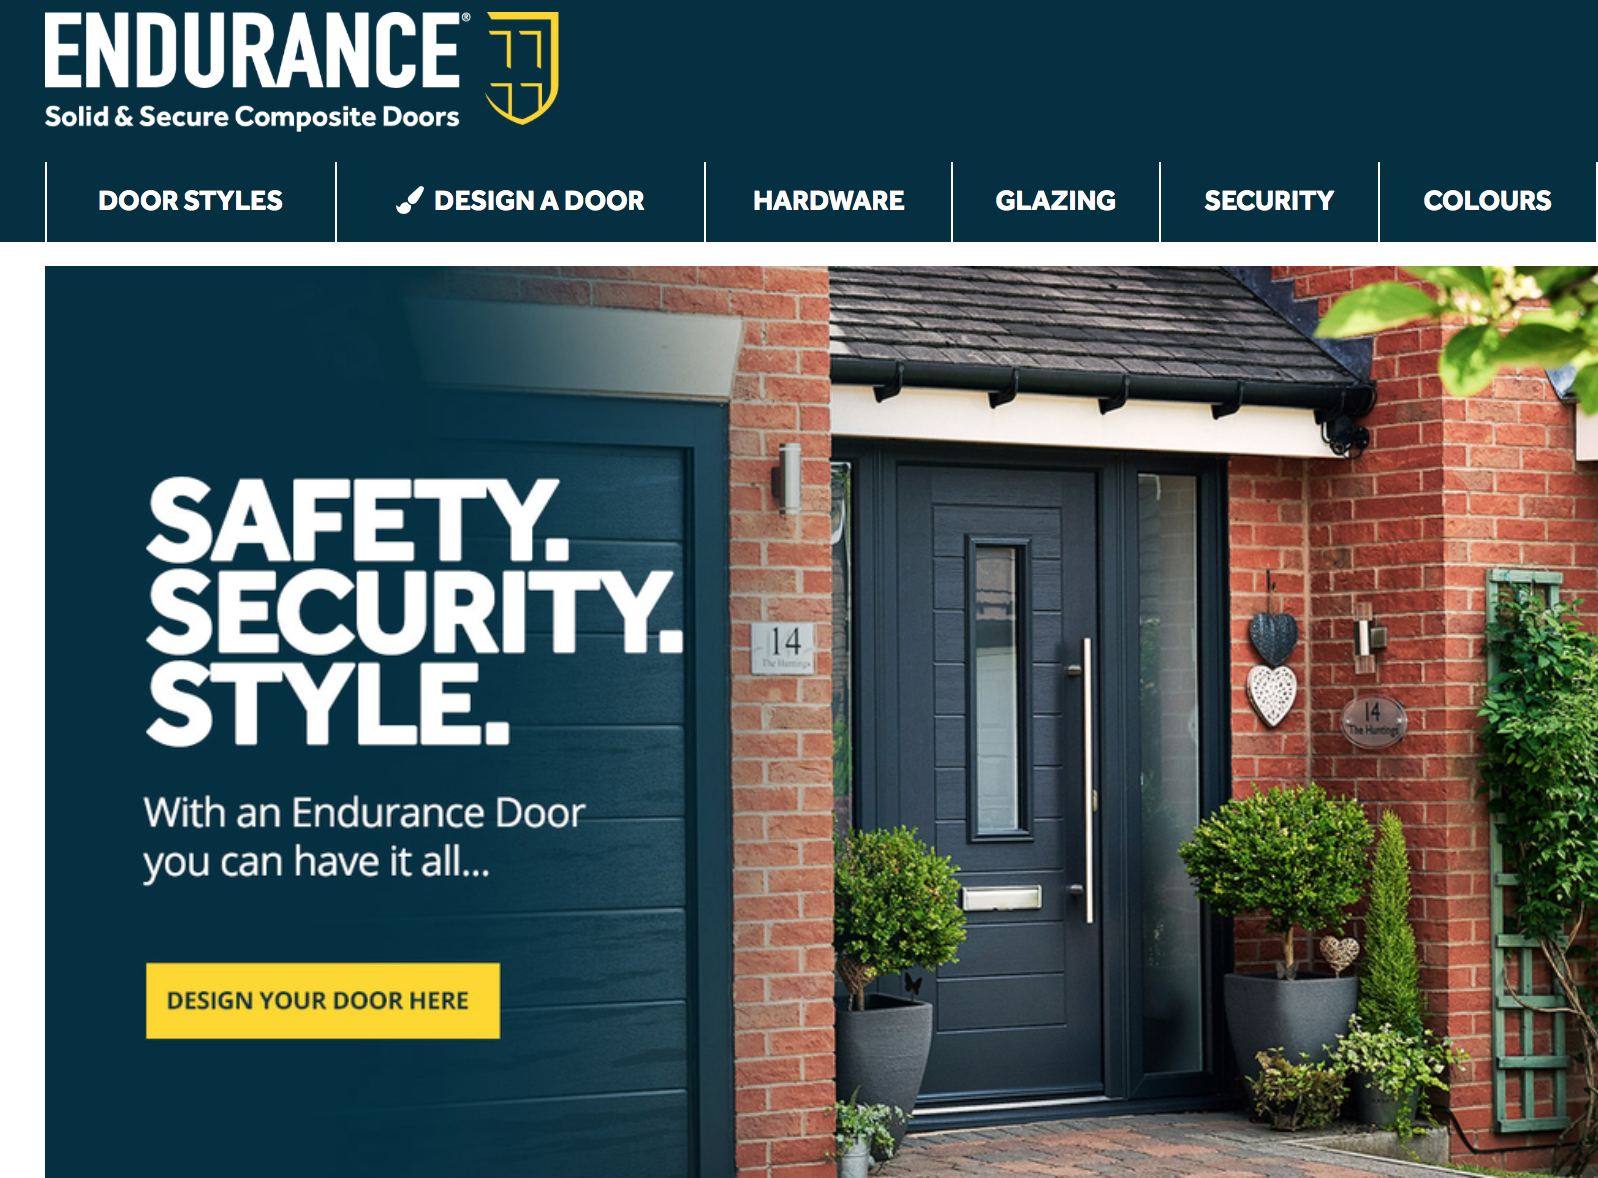 Endurance Doors are our Match Day Sponsor against Flixton on Saturday.